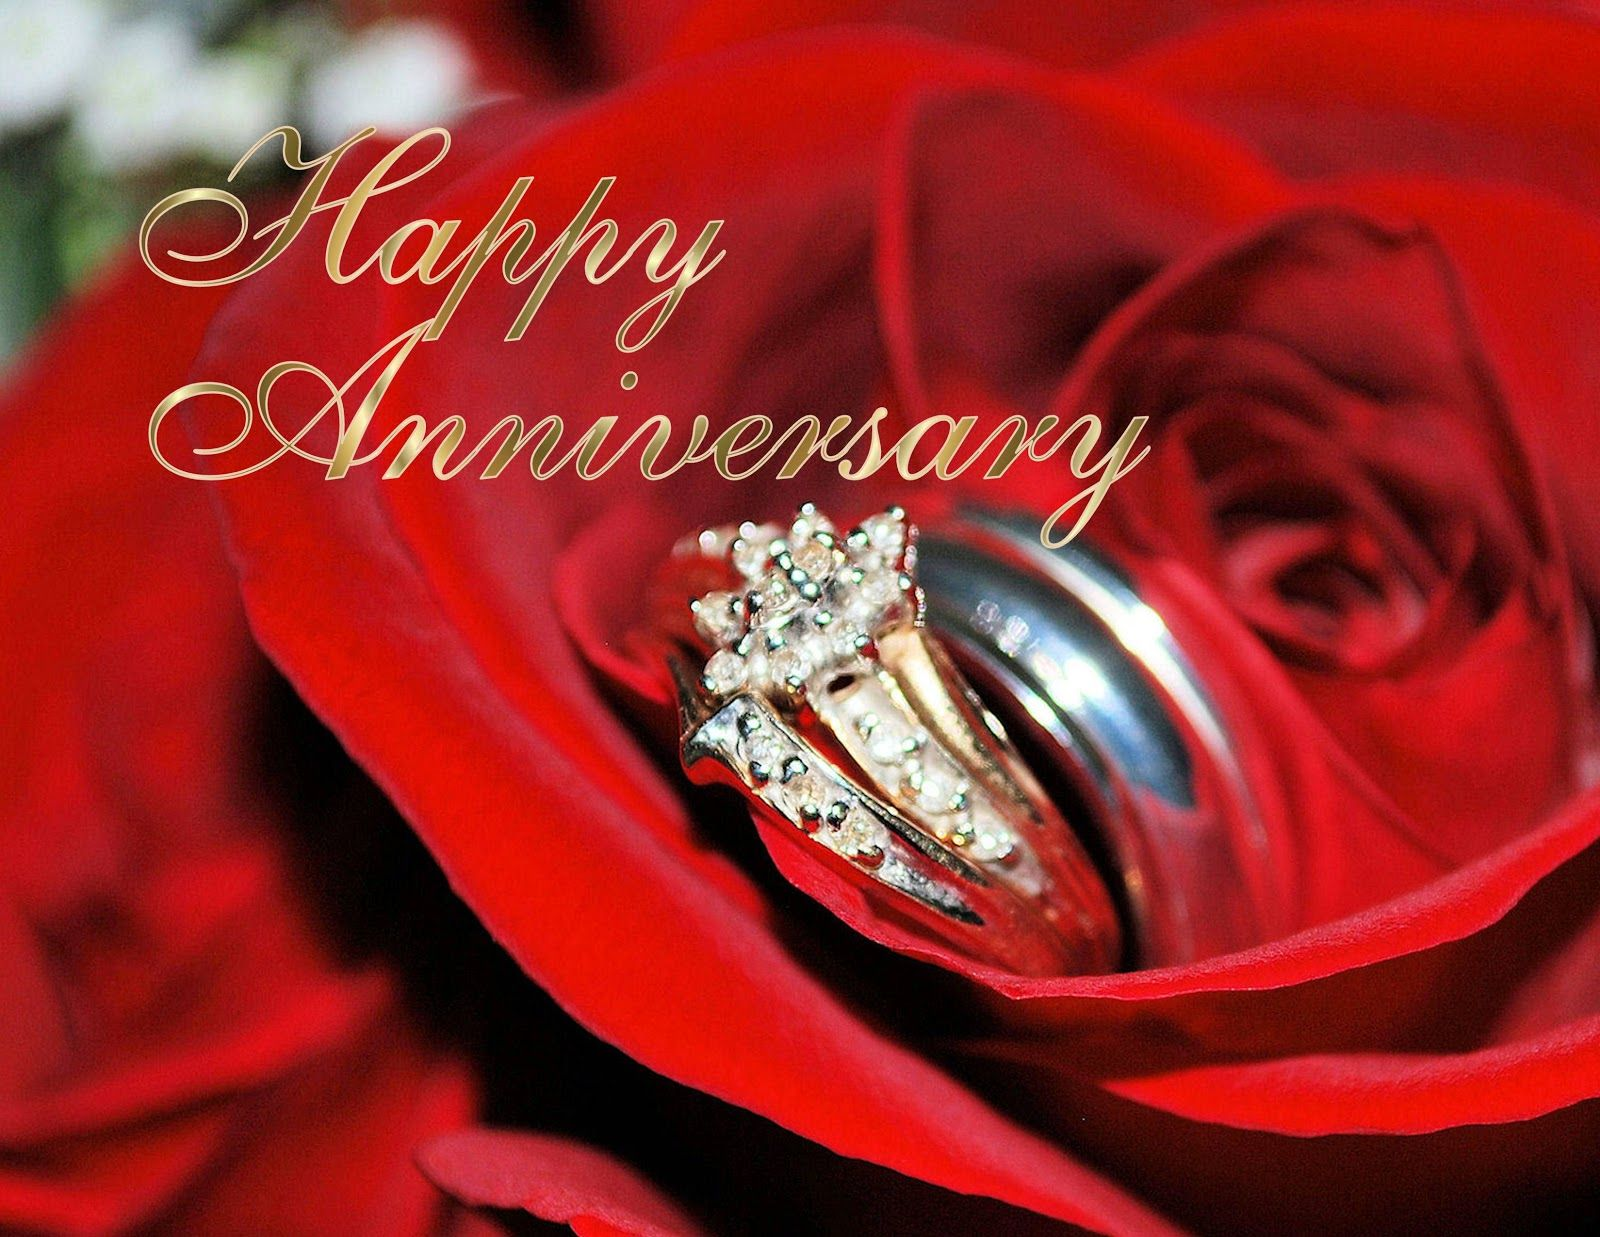 wedding anniversary wishes shayari in hindi%0A     best happy birthday greetings images on Pinterest   Cook and  Relationships